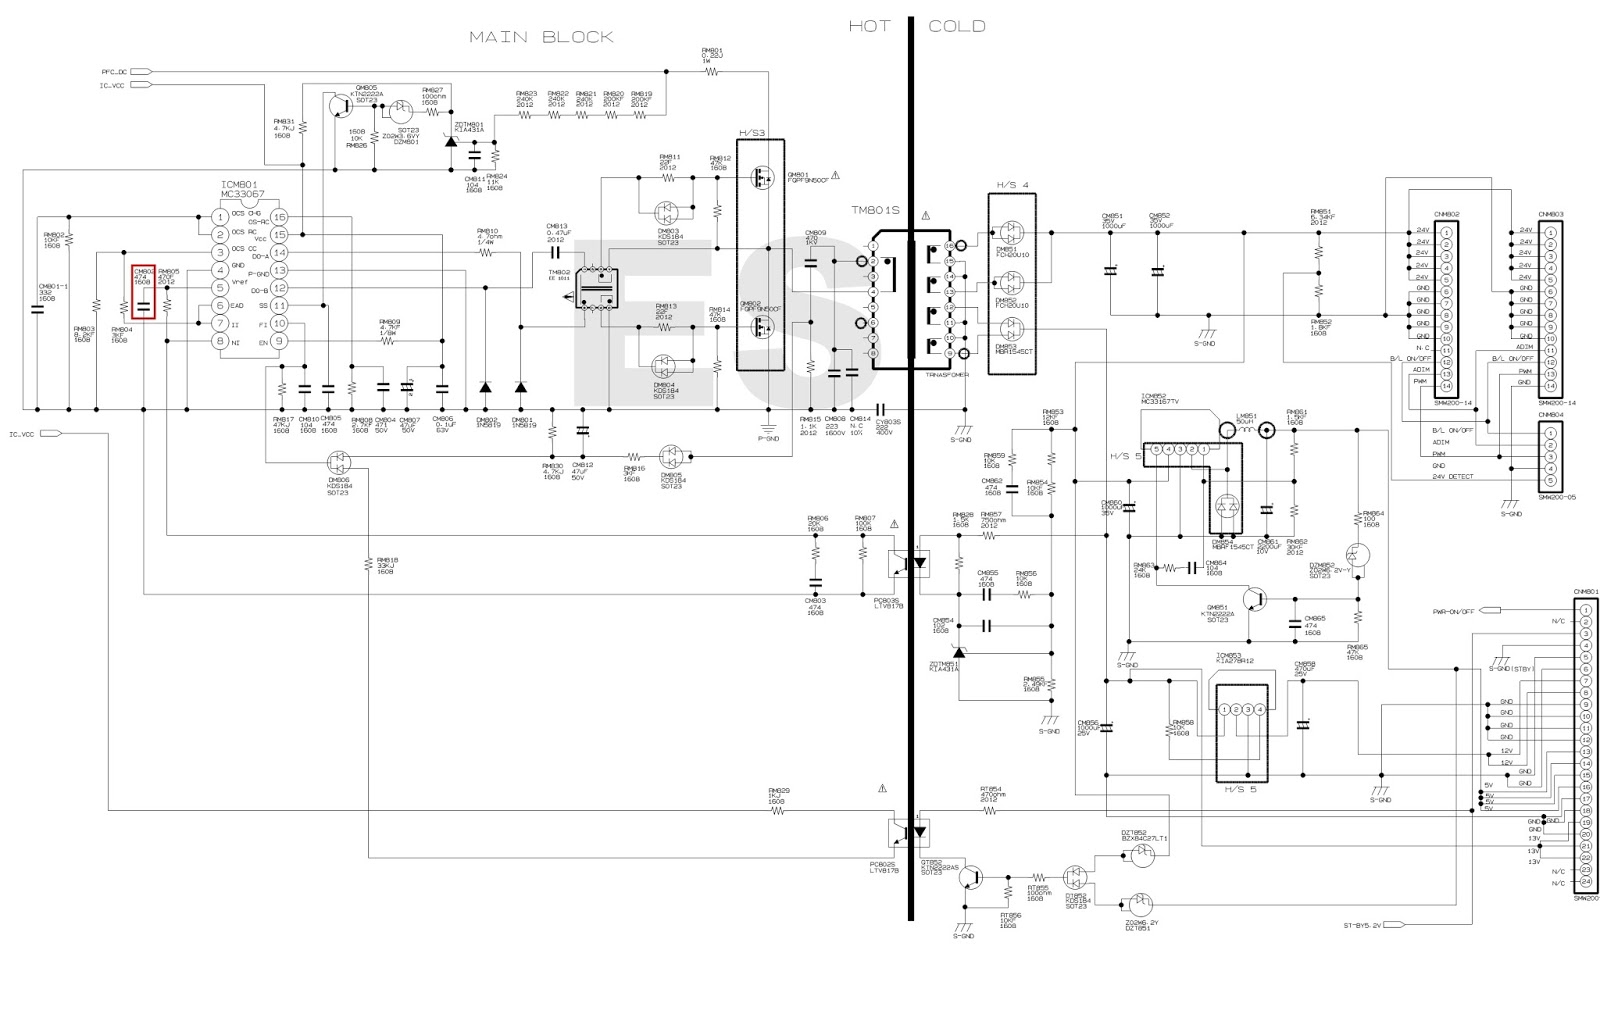 Attractive 450w Smps Circuit Diagram Illustration - Simple Wiring ...